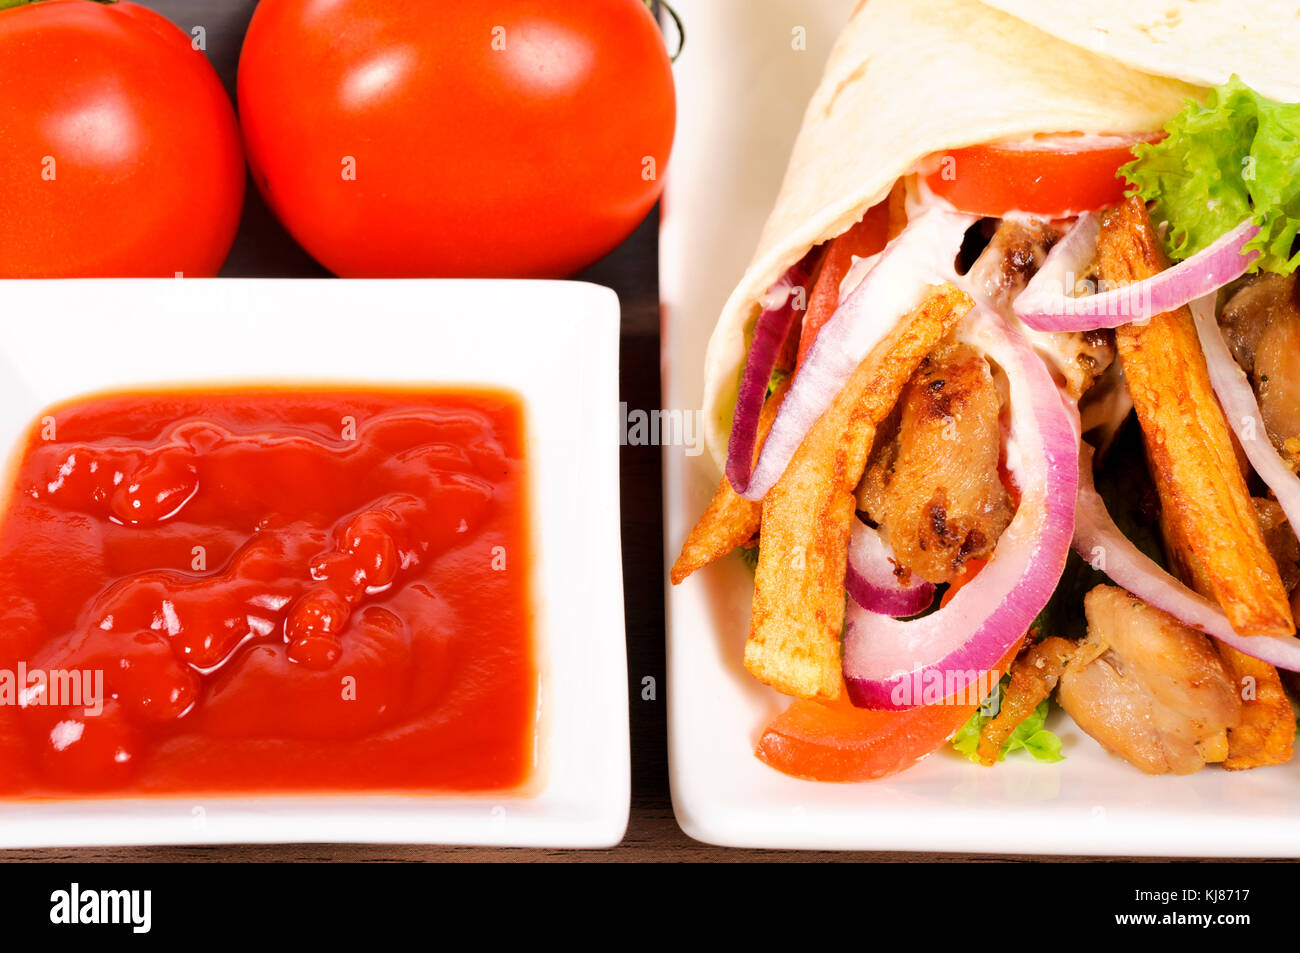 Selective focus on the gyros and ketchup - Stock Image